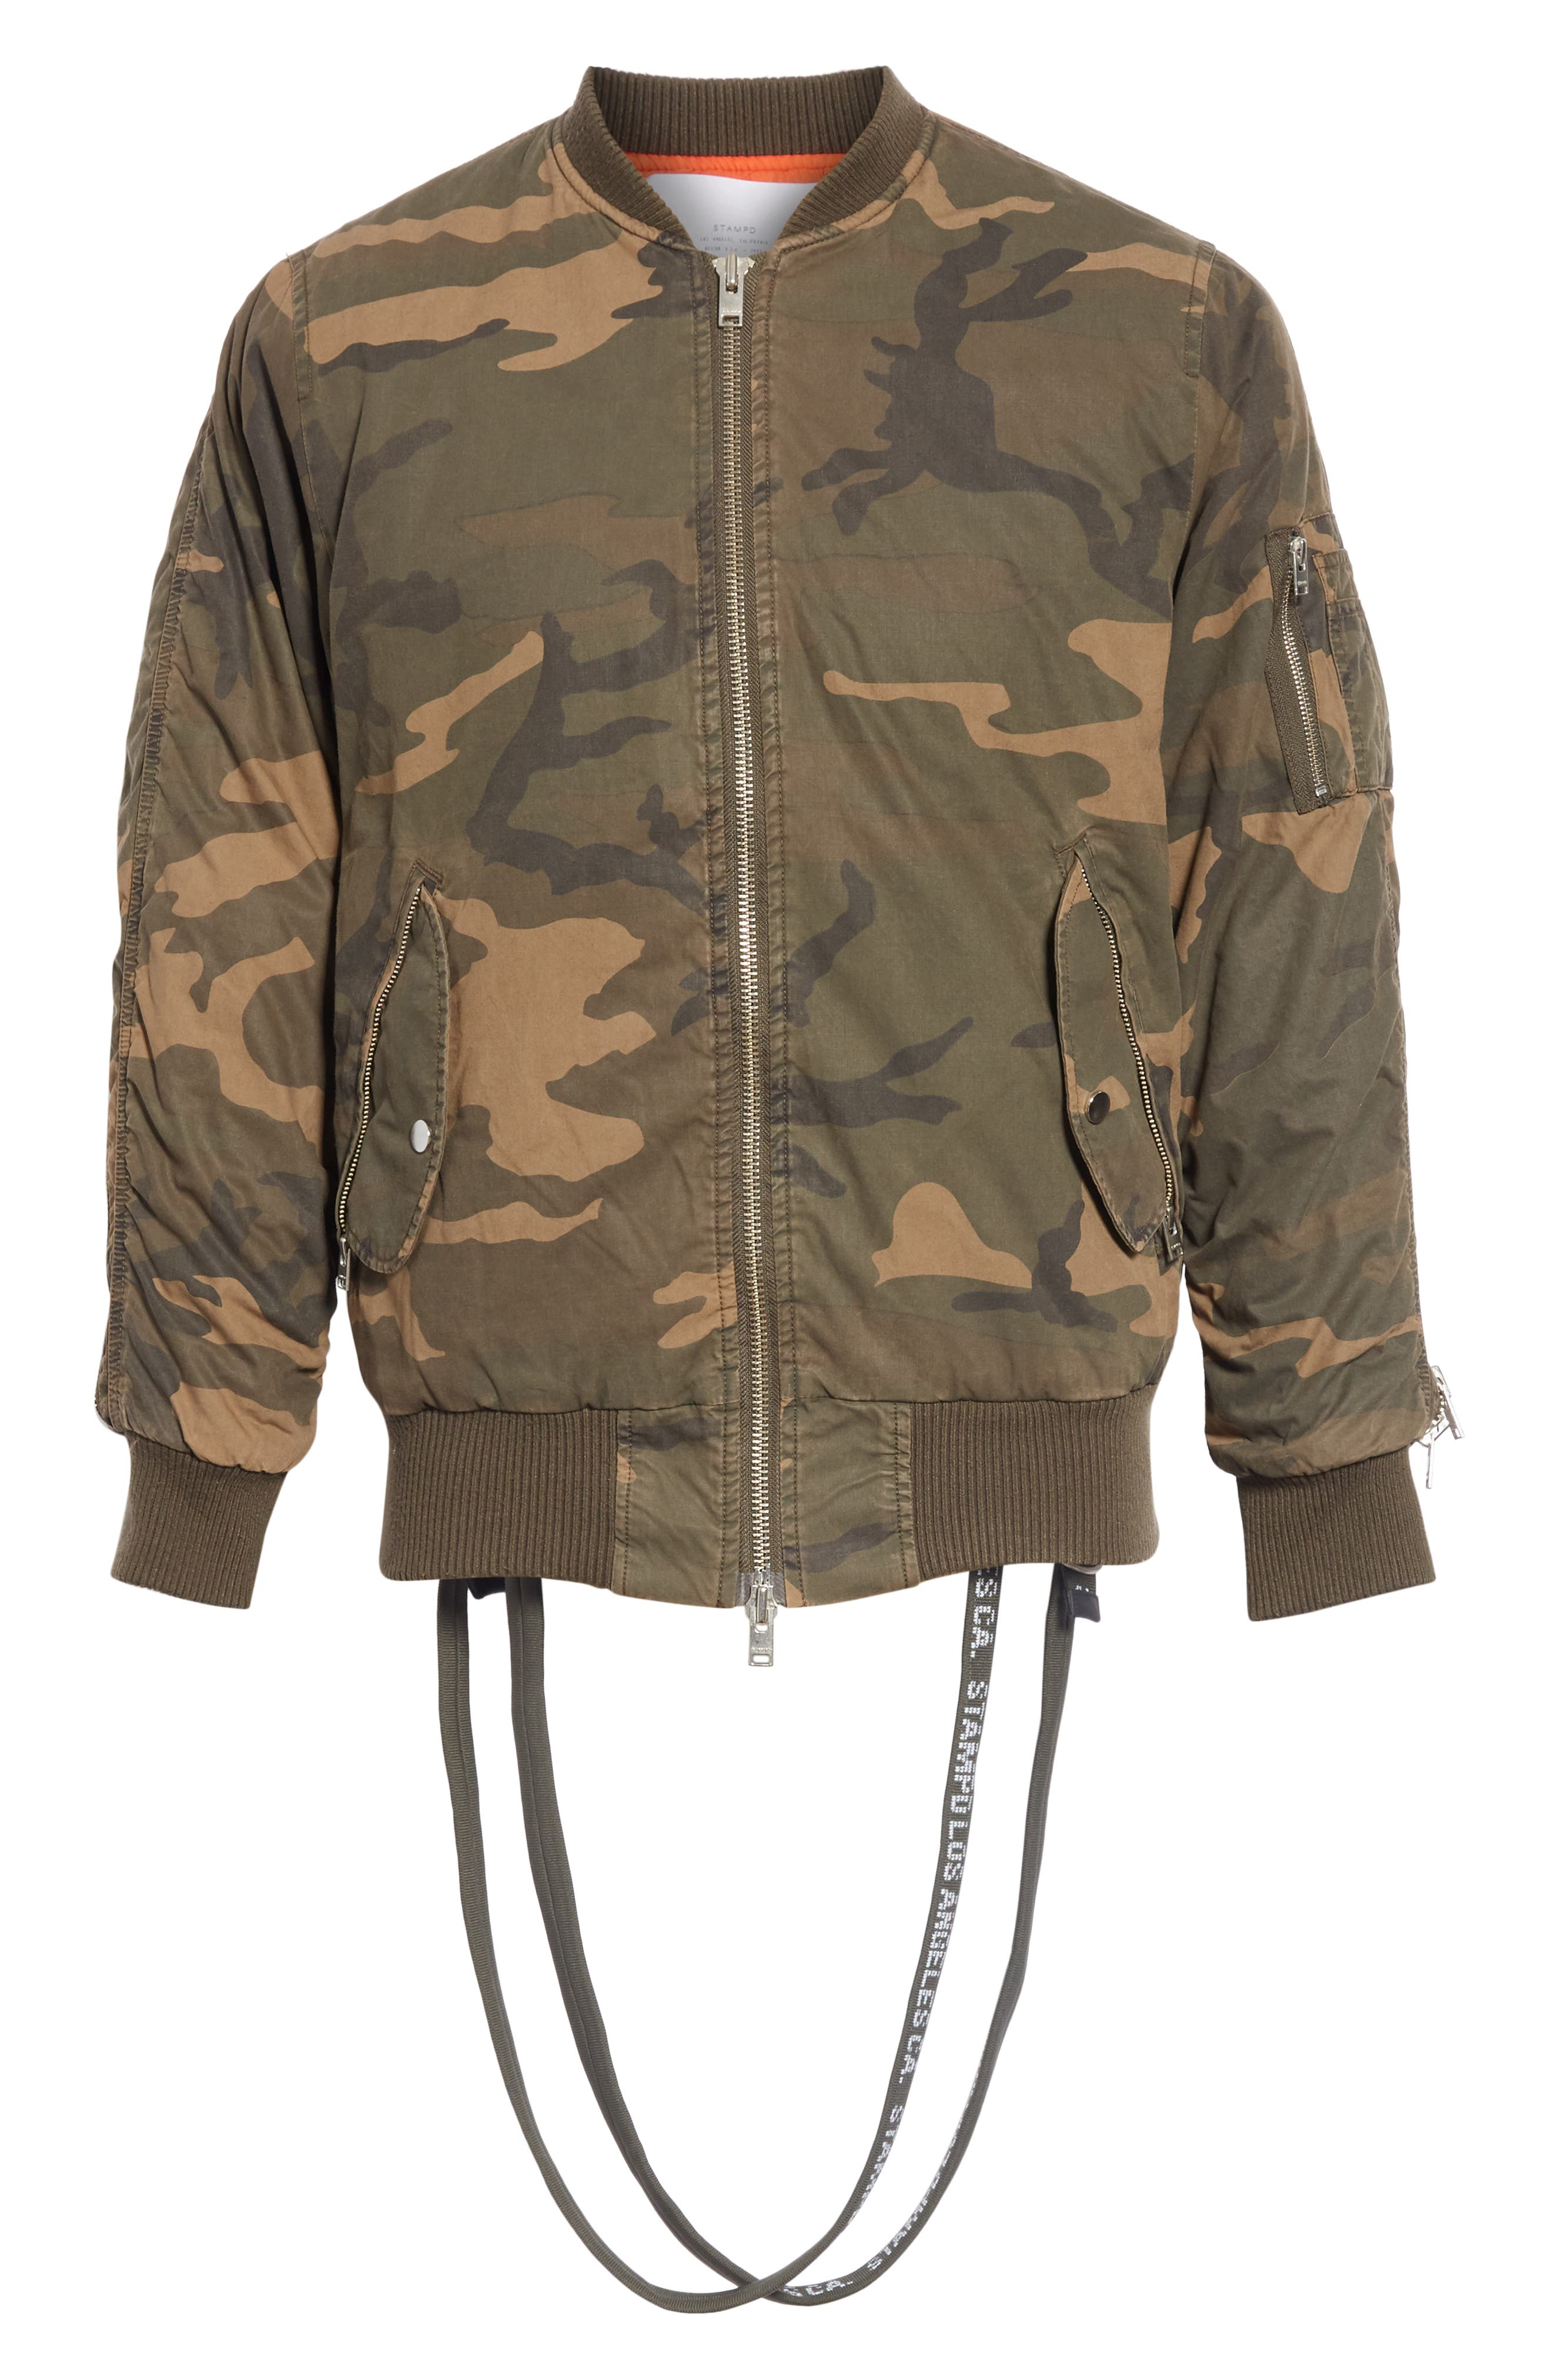 Convoy Strap Bomber Jacket,                             Alternate thumbnail 5, color,                             310